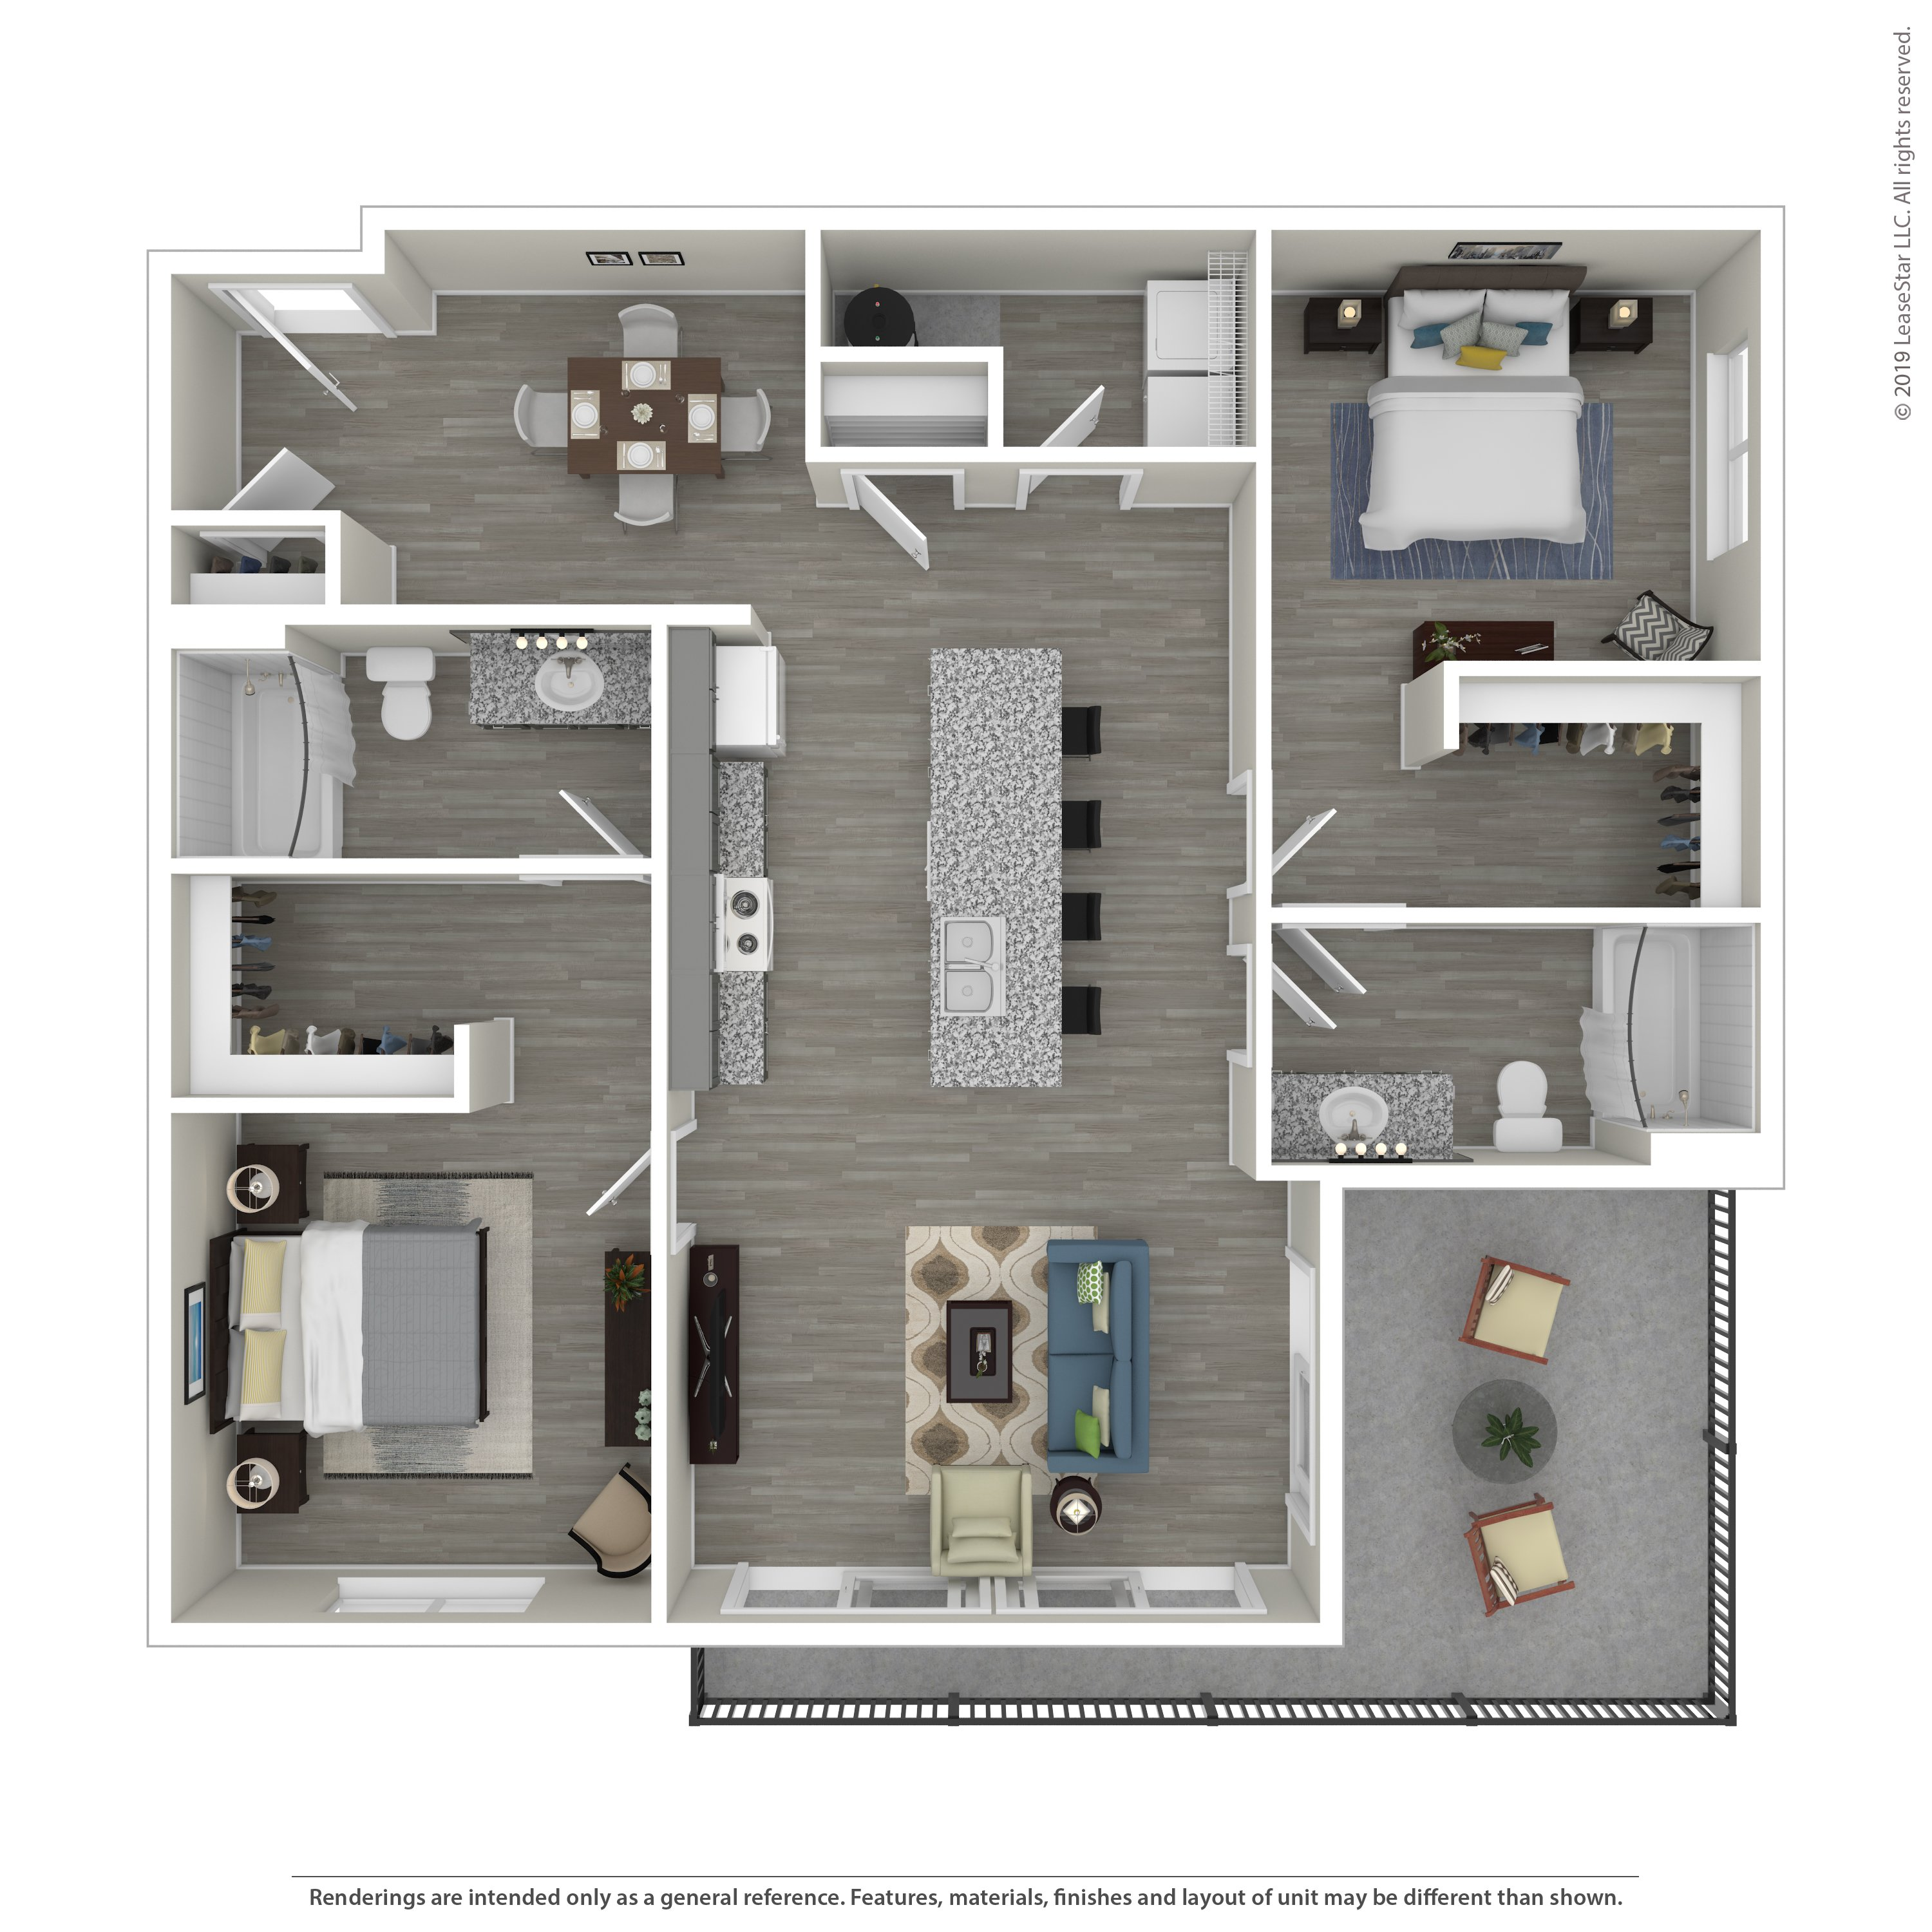 Our Monroe Large is a 2 Bedroom, 2 Bathroom Apartment